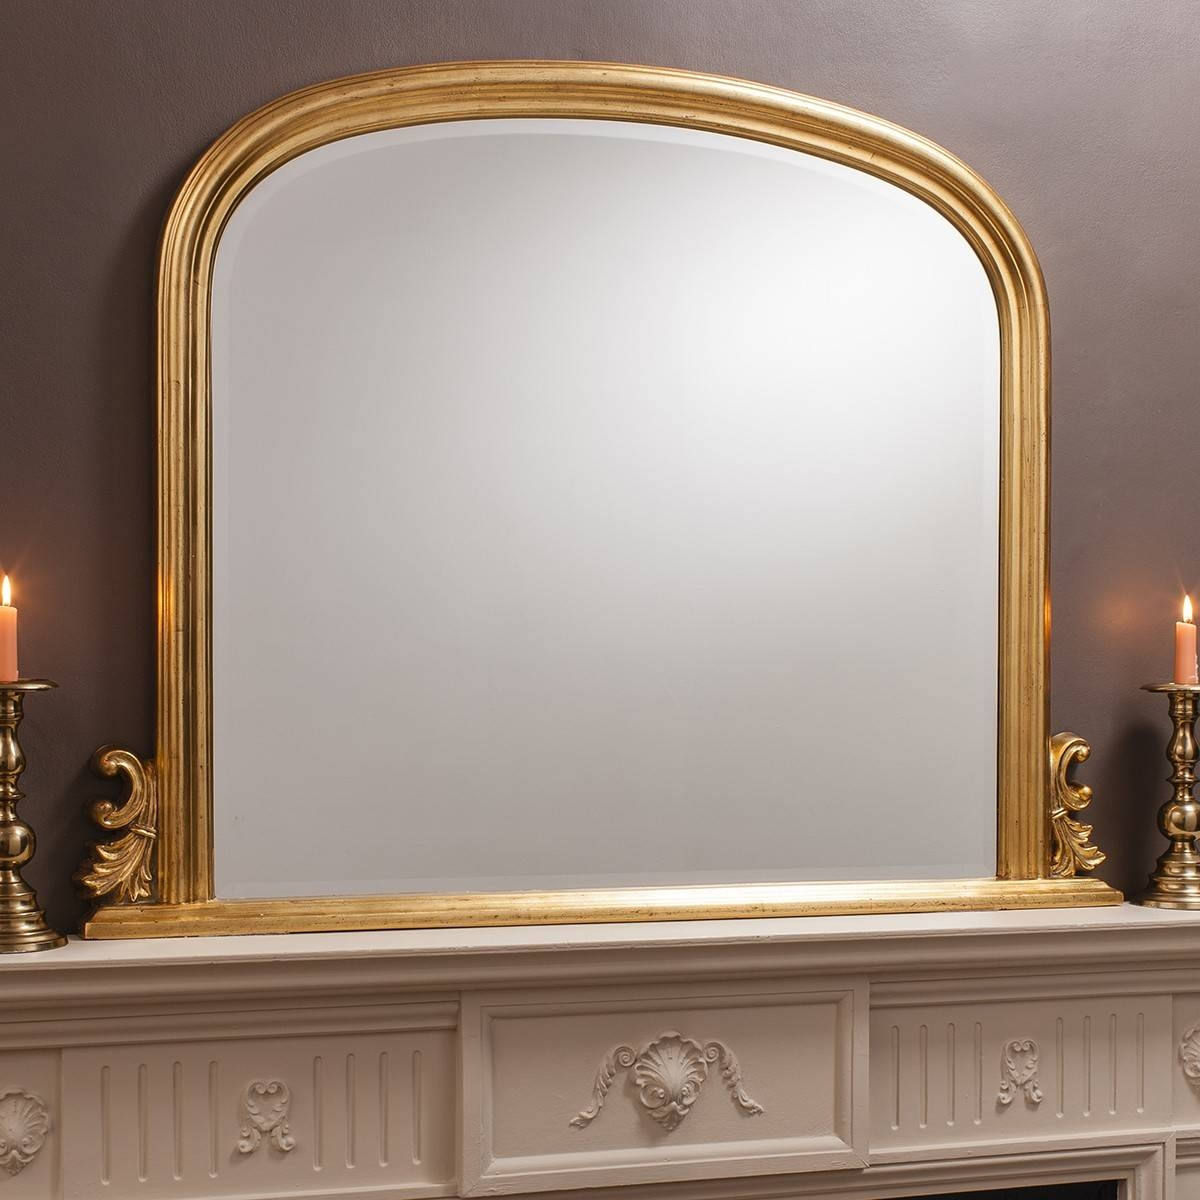 Grace Overmantle Mirror From £249 – Luxury Overmantle Mirrors With Over Mantel Mirrors (View 14 of 15)